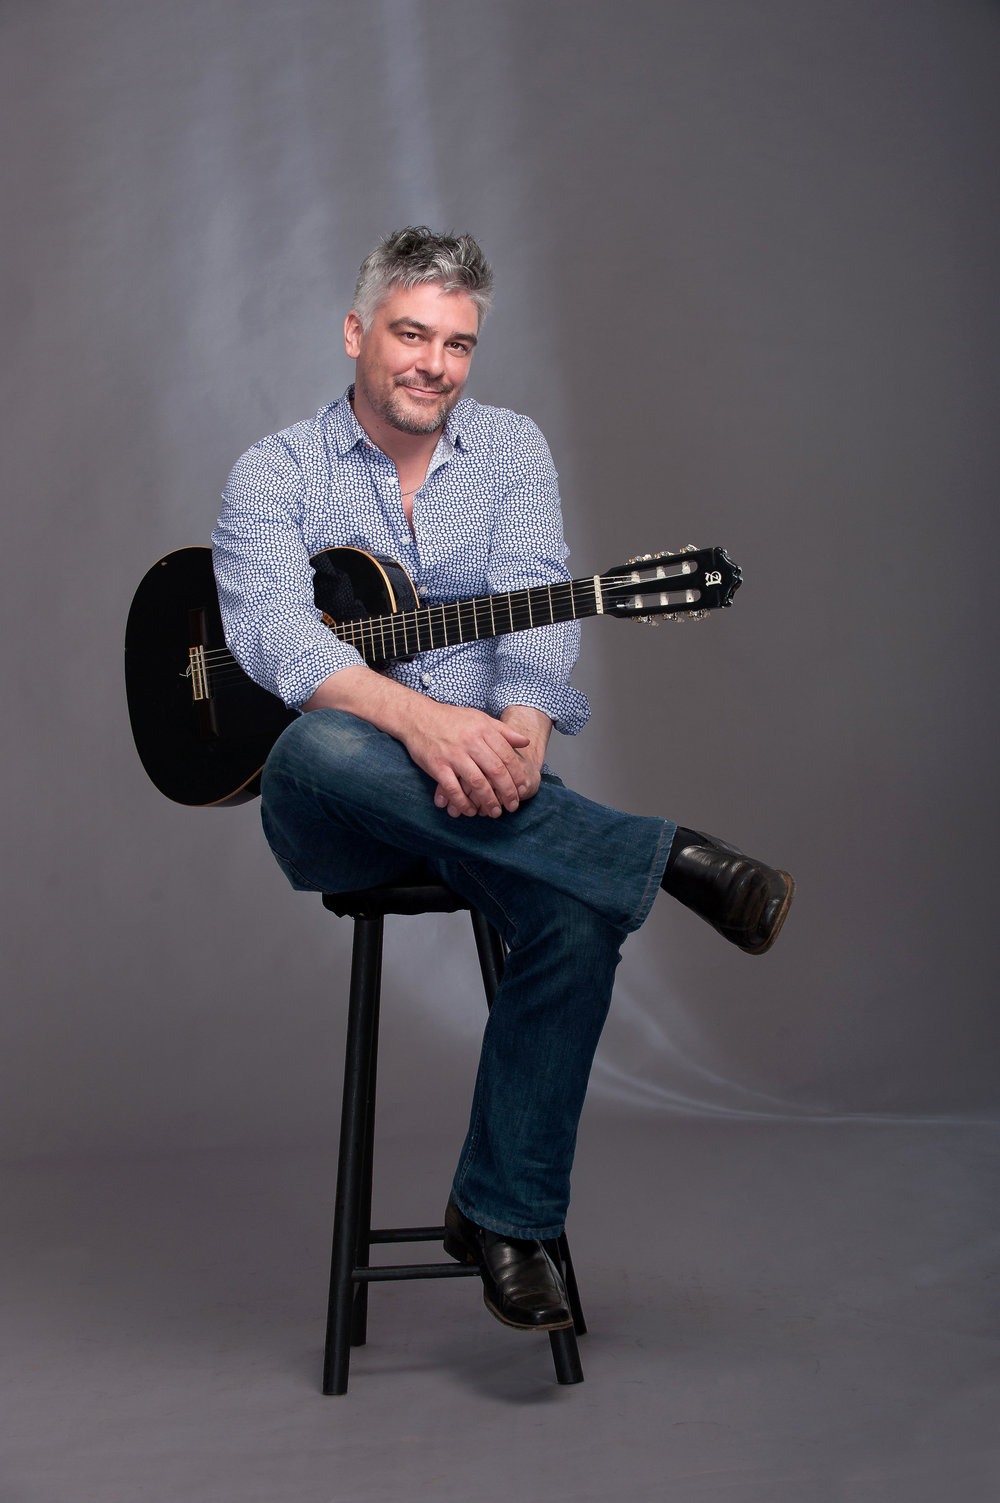 James Grace (guitar) plays JOURNEY TO SPAIN on Friday 26 October at 7:30 pm